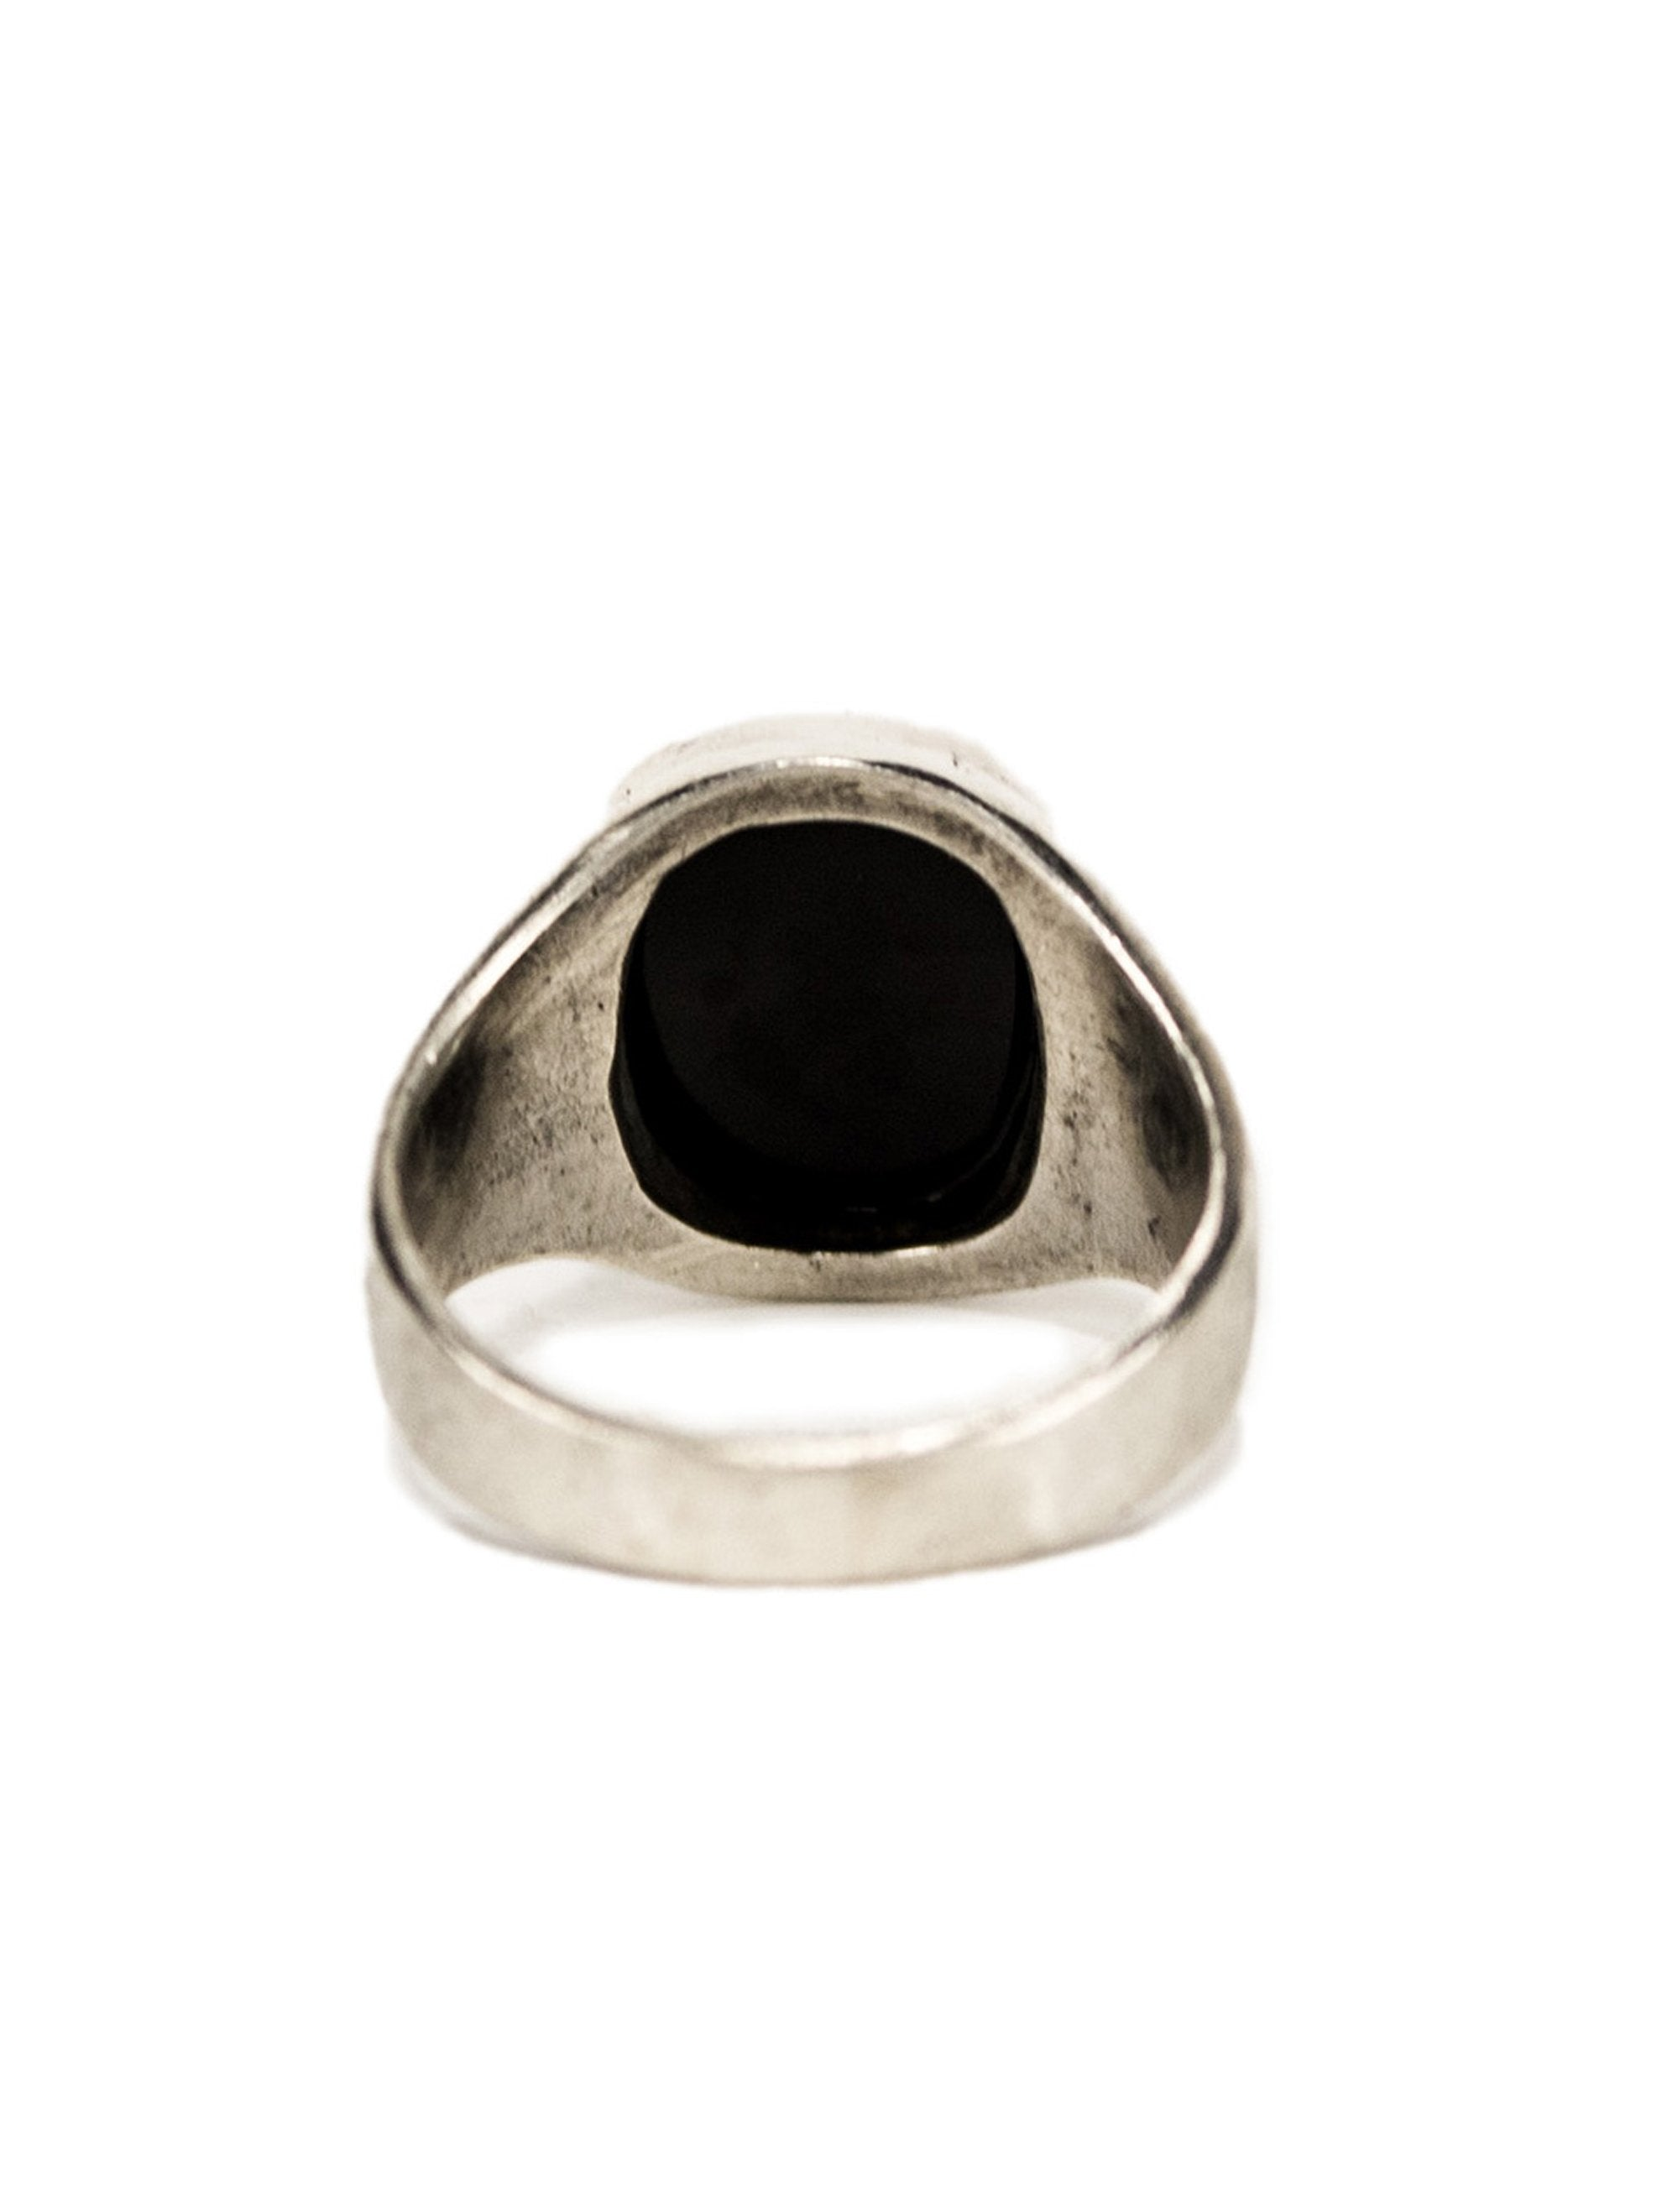 9.5 1930's Sterling Silver and Onyx Men's Ring 3